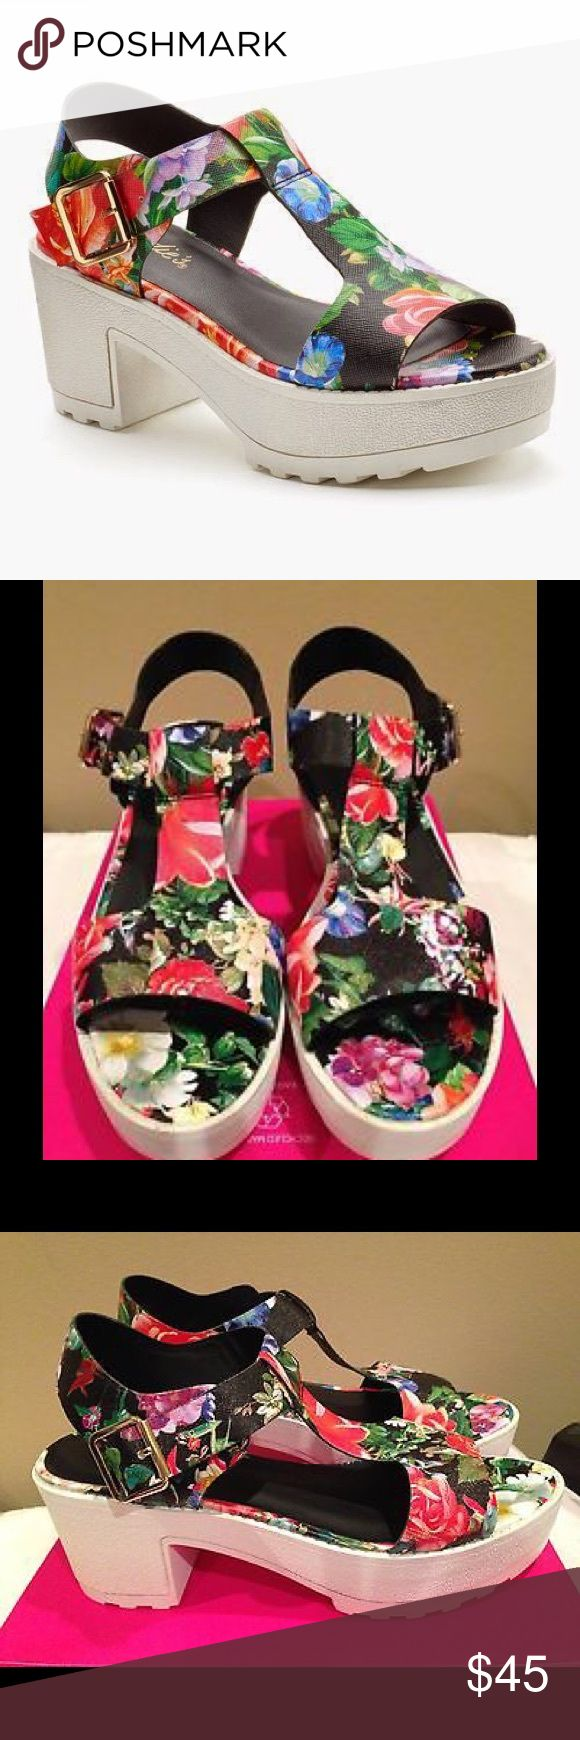 "CANDIE'S Black Floral Platform Sandals 🎉HP🎉NWT Candie's black floral platform sandals will add fun fabulous style to your wardrobe! They are perfect for the beach or on the city streets! * Upper/lining/outer sole: Man made * Padded foot bed and heal bed * Silver-tone adjustable buckle * Platform w/block heel *1"" platform/2 3/4"" heel height  *Bundle Discounts * No Trades * Smoke free Candie's Shoes Sandals"